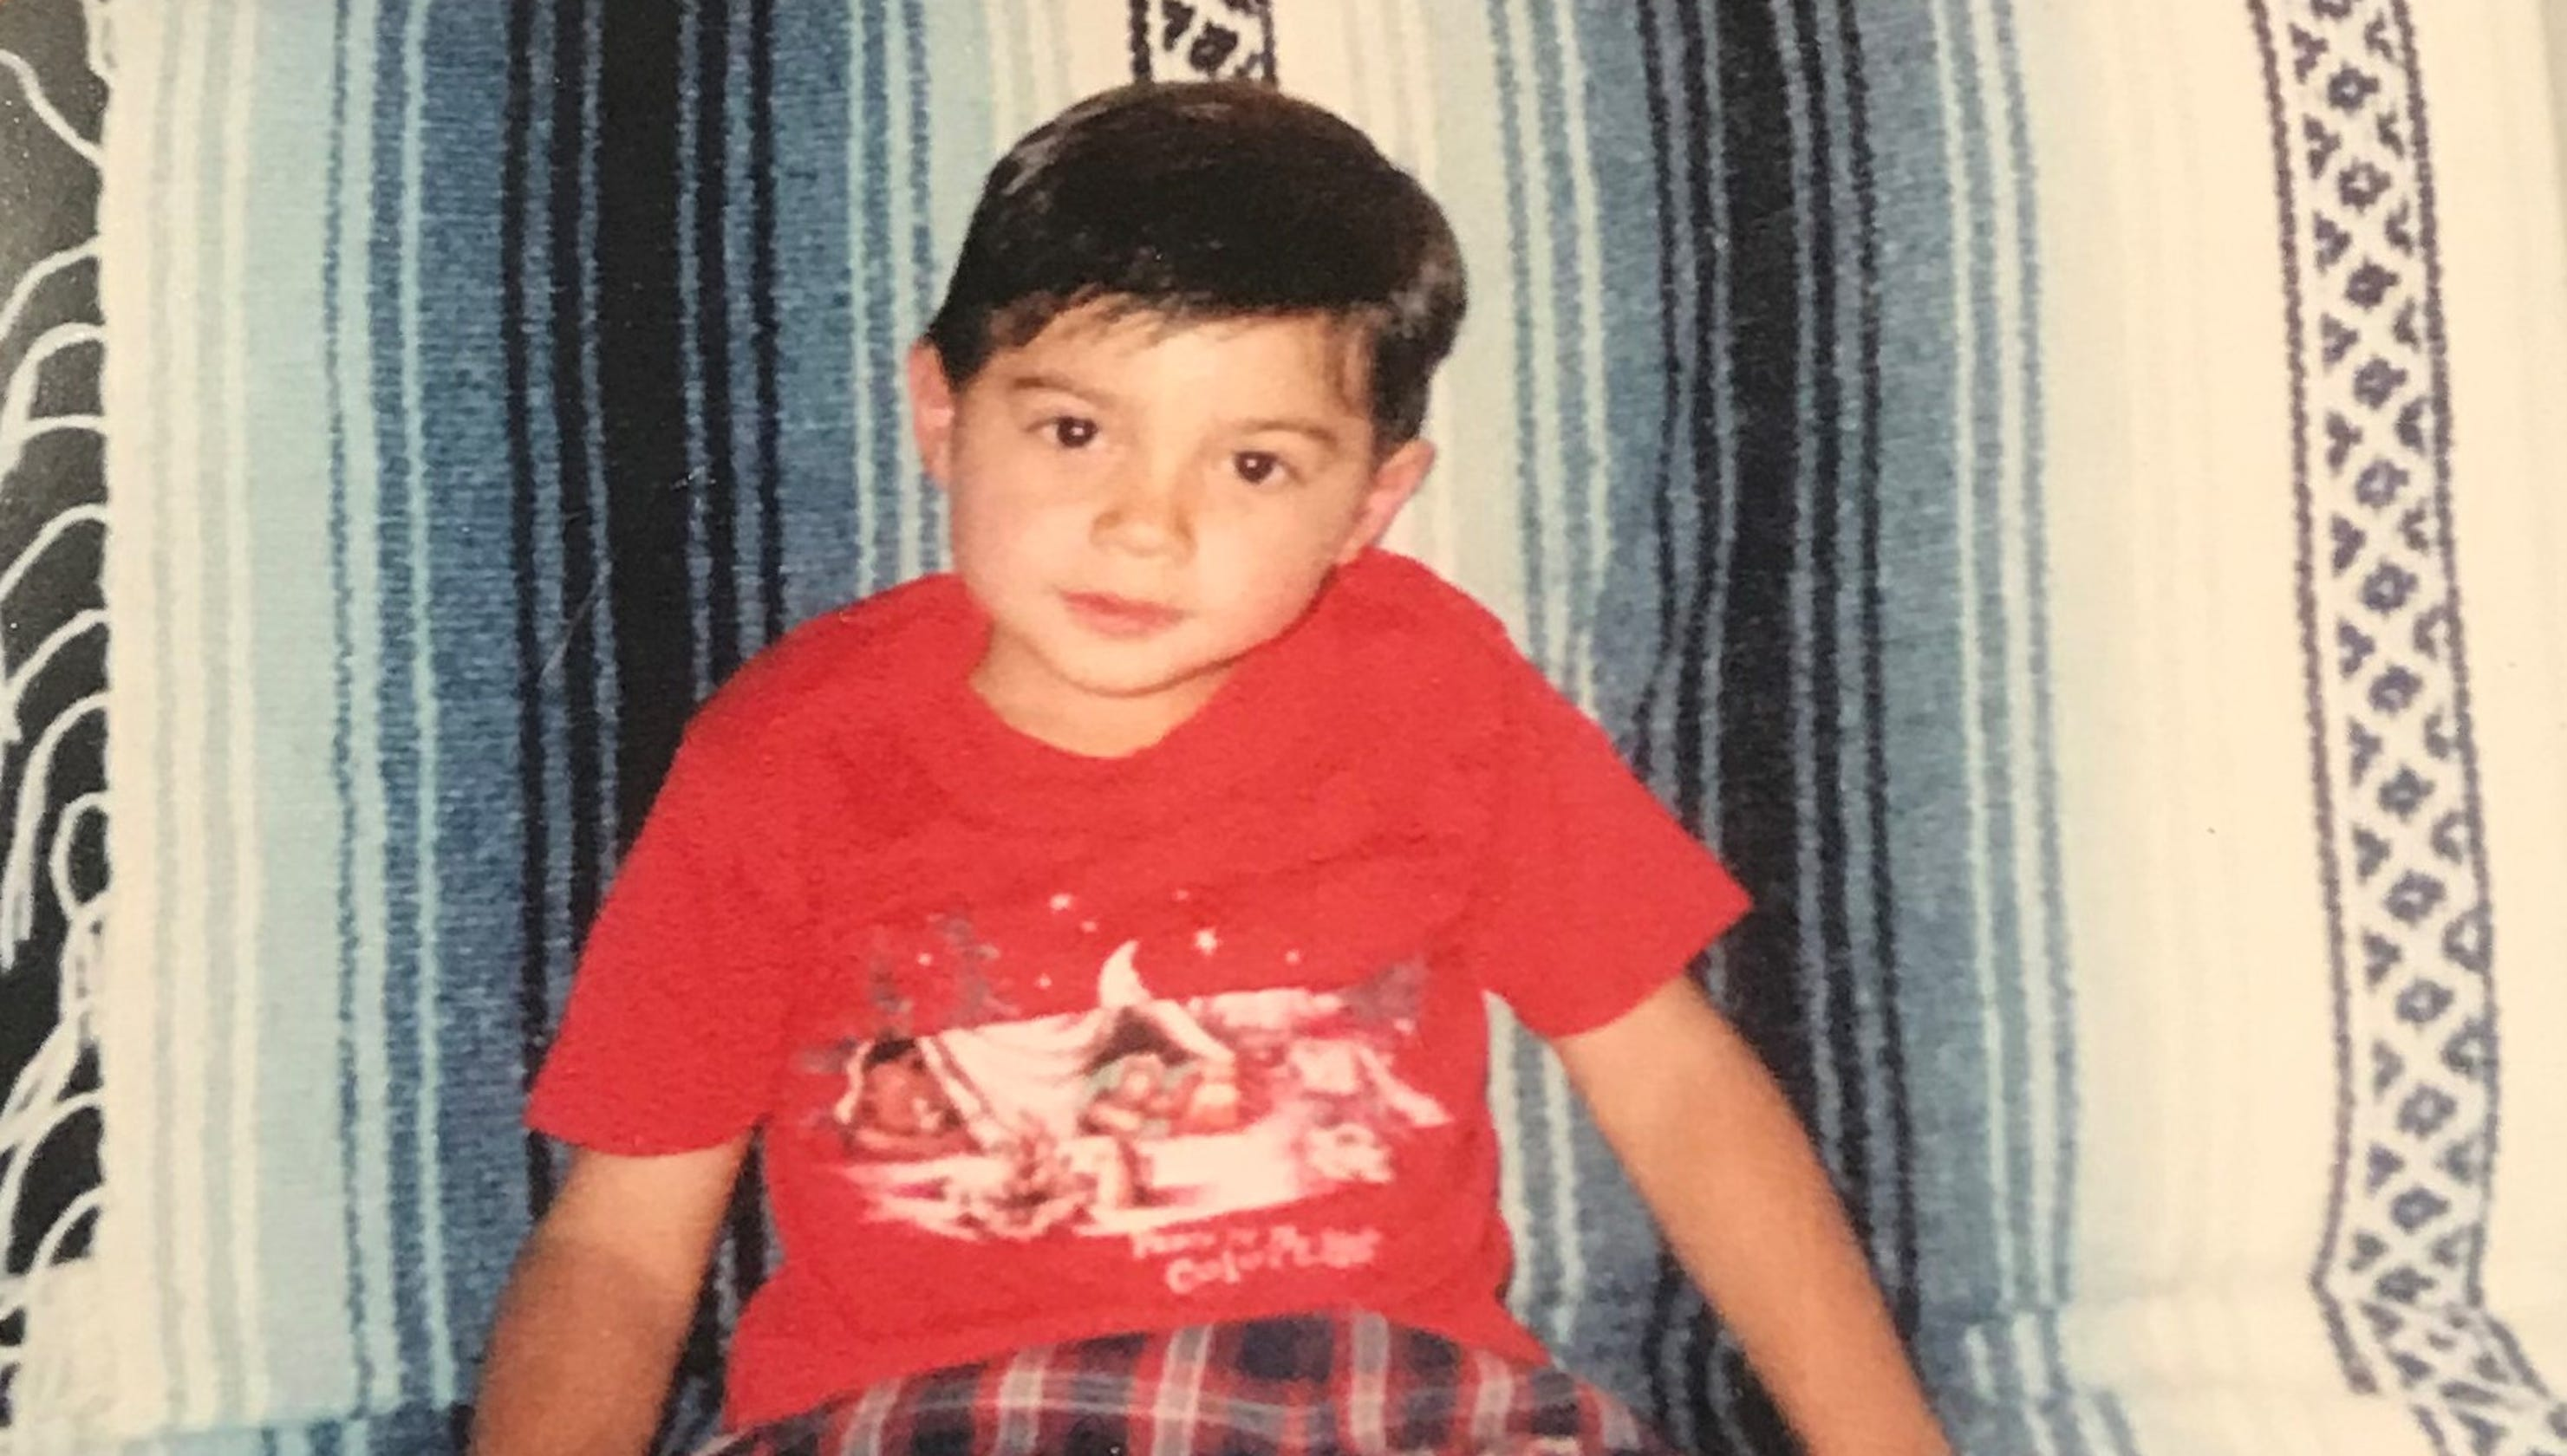 Jaryd Atadero, missing toddler from Poudre Canyon, a